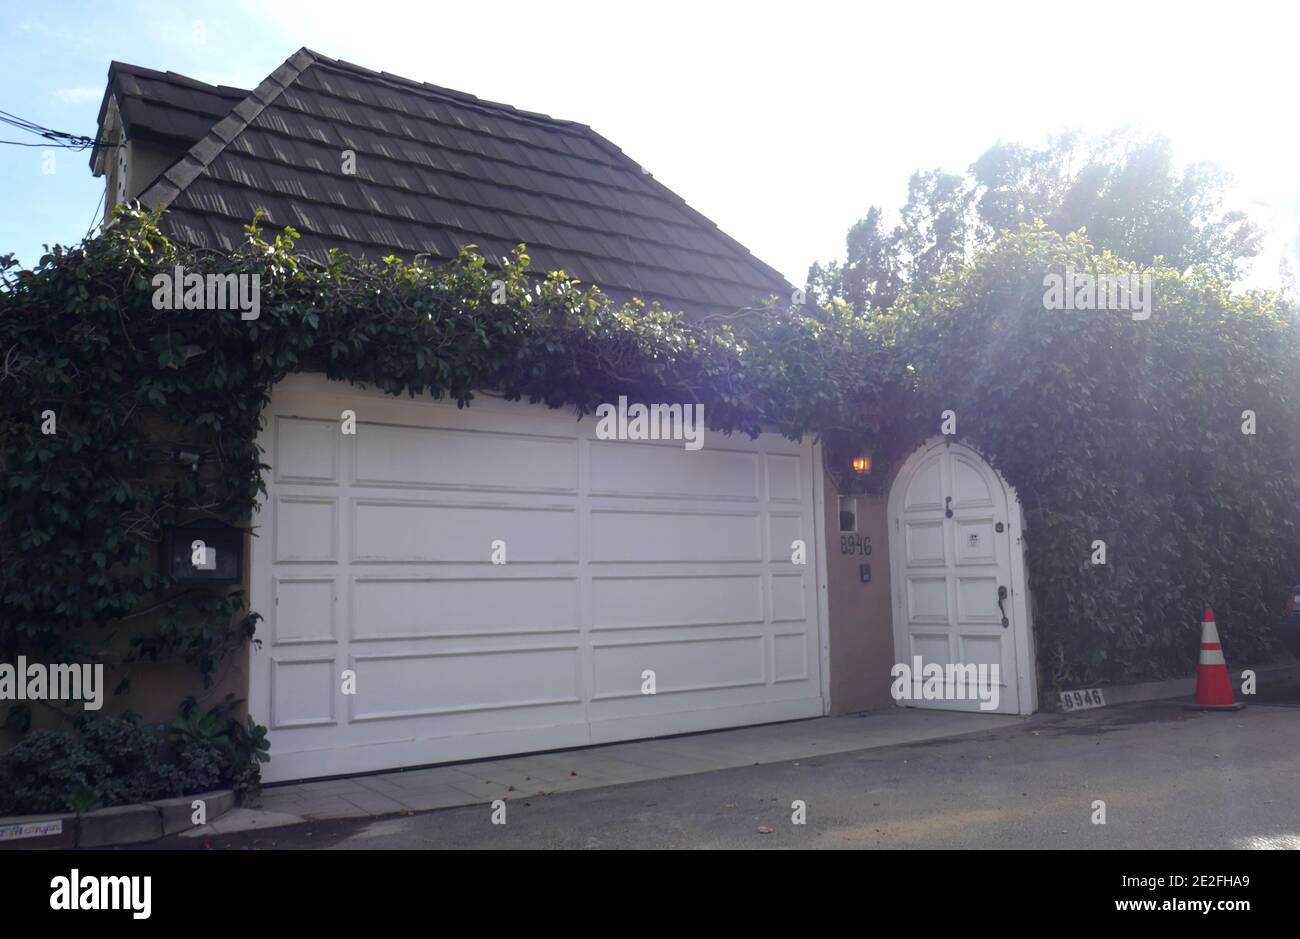 Los Angeles, California, USA 13th January 2021 A general view of atmosphere of former home/residence of actor Errol Flynn and wife actress Lili Damira at 8946 Appian Way on January 13, 2021 in Los Angeles, California, USA. Photo by Barry King/Alamy Stock Photo Stock Photo